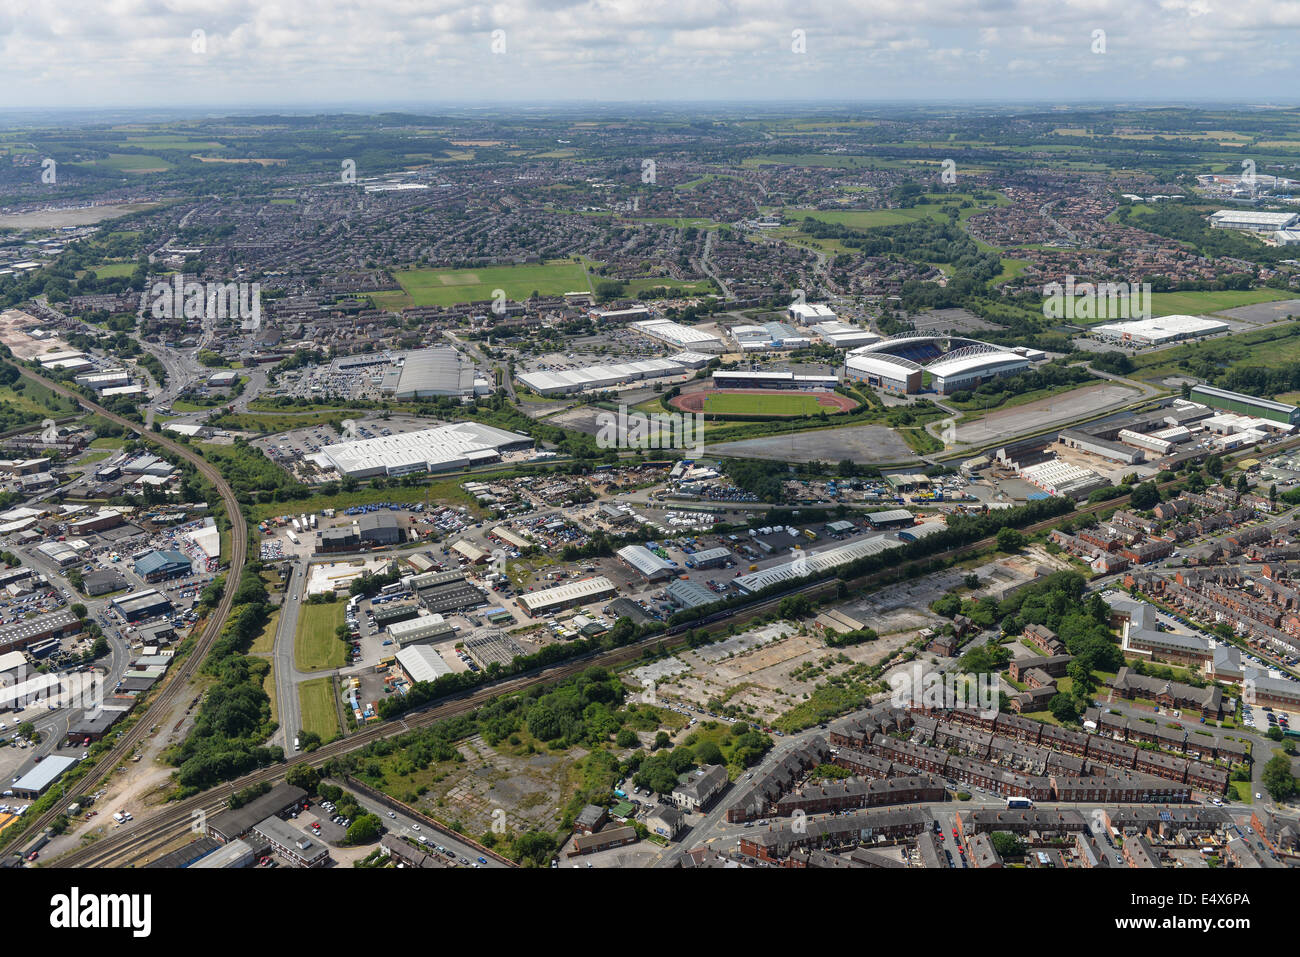 An aerial view of Wigan showing industrial areas and the JJB Stadium, home of Wigan Athletic FC - Stock Image